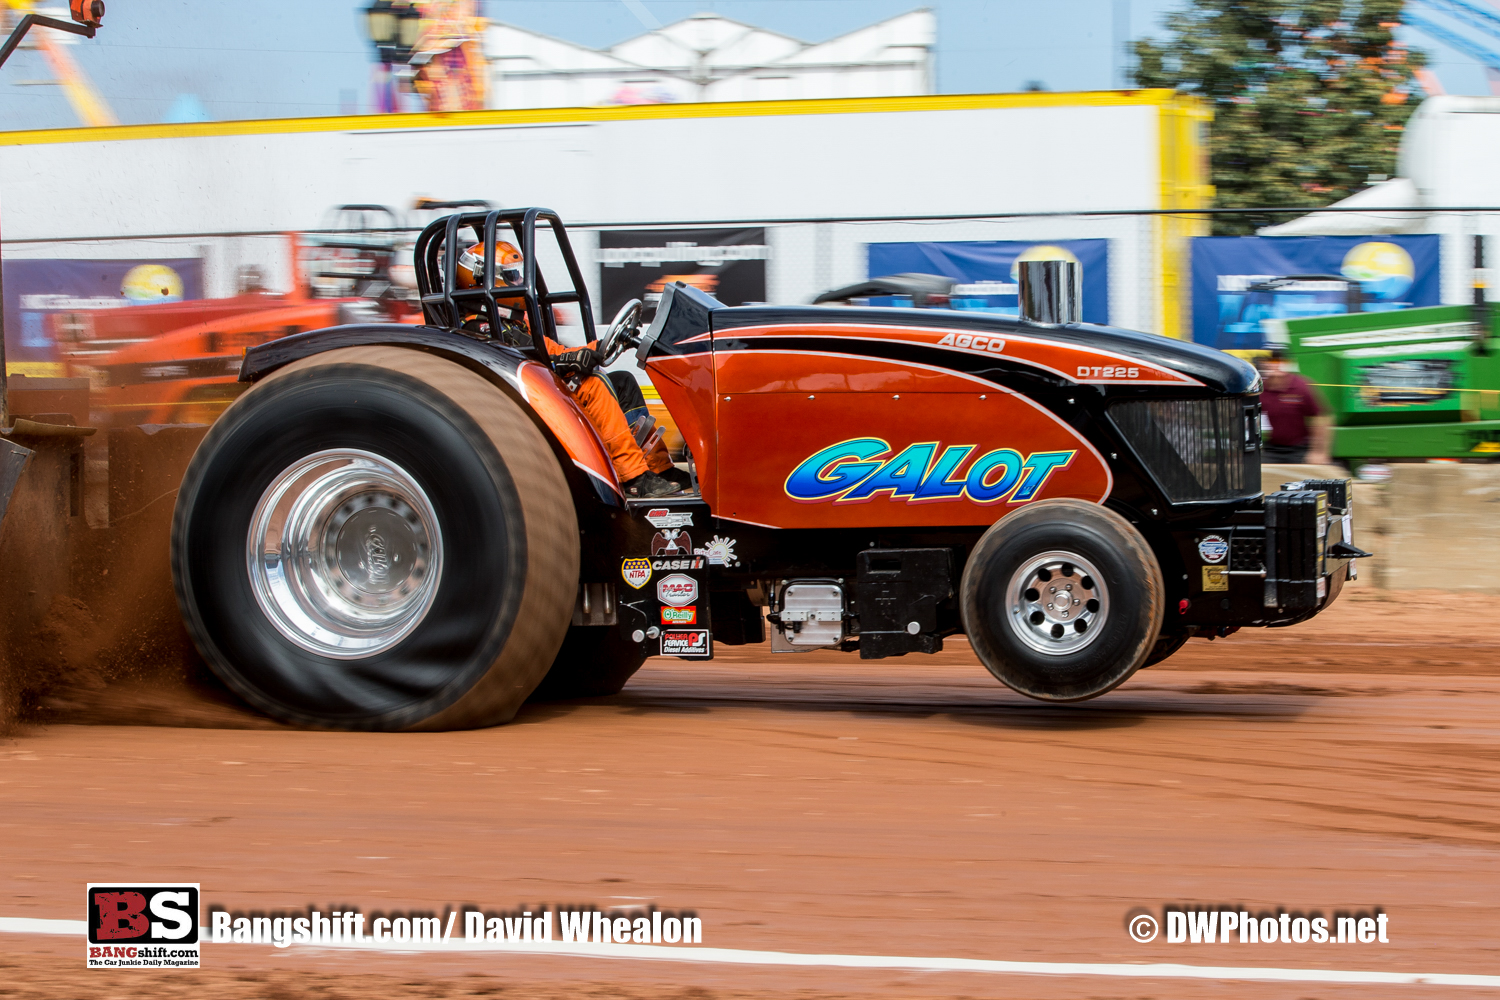 NTPA North Carolina State Fair: Our Last Big Collection Of Action Photos From The Event